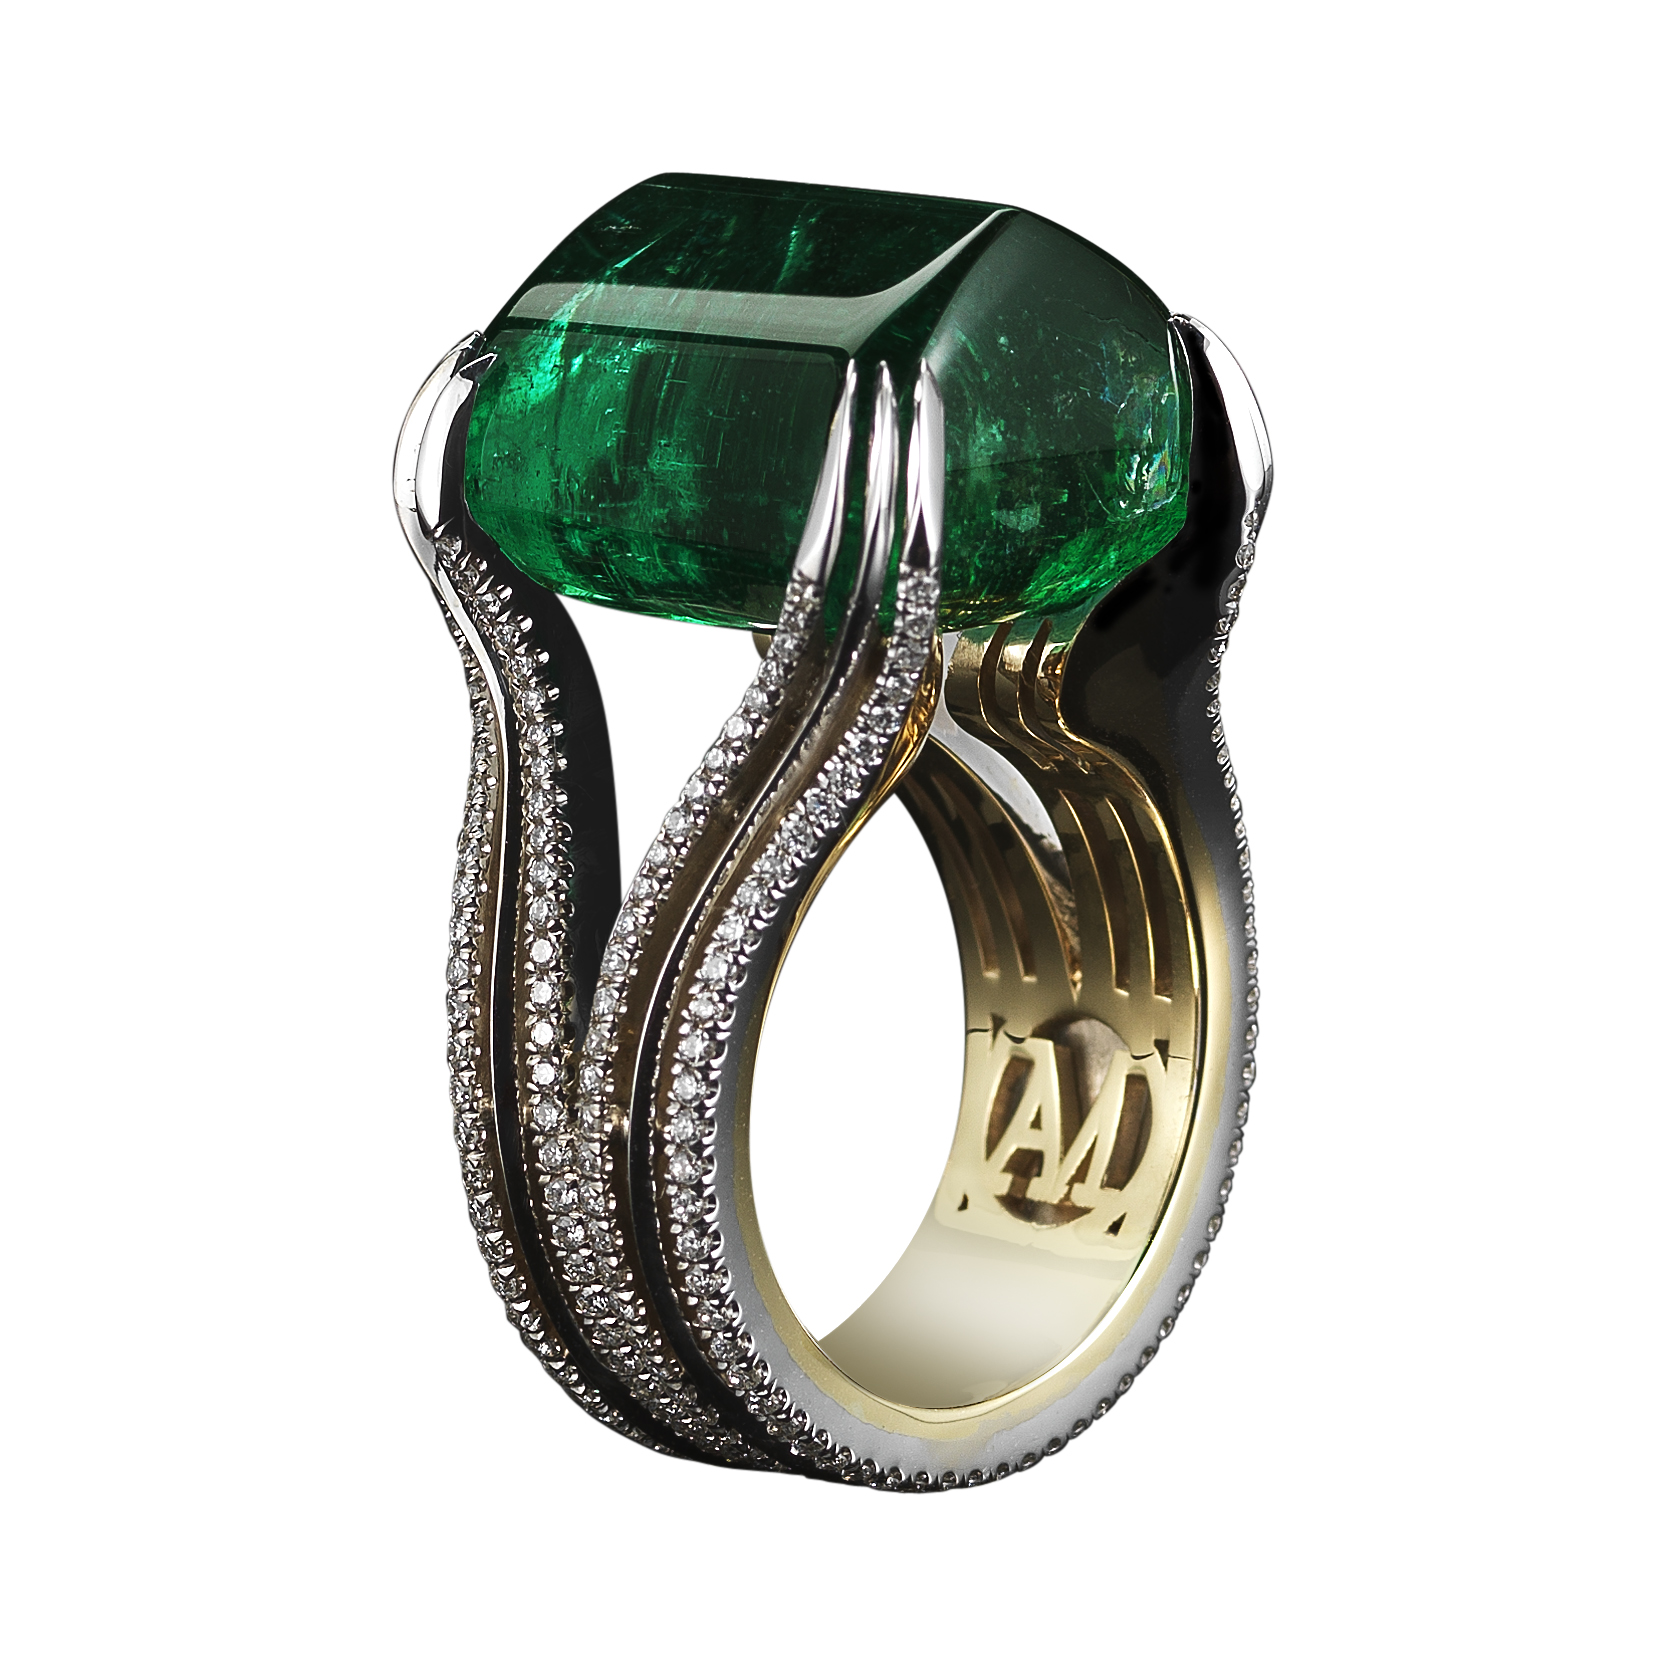 A 26.16 carat Sugarloaf-cabochon Emerald ring set with Alexandra Mor's signature details of double bands of 1mm knife-edged wire and 0.84 carats of 1mm 'floating' Diamond melee. 18-karat white gold set on a 1mm 18-karat yellow gold band with AM logo gallery. Created with a Gemfields gem, where all Emeralds are ethically sourced from mine to market. Signed by artist. Crafted in the USA. One-of-a-Kind 1/1